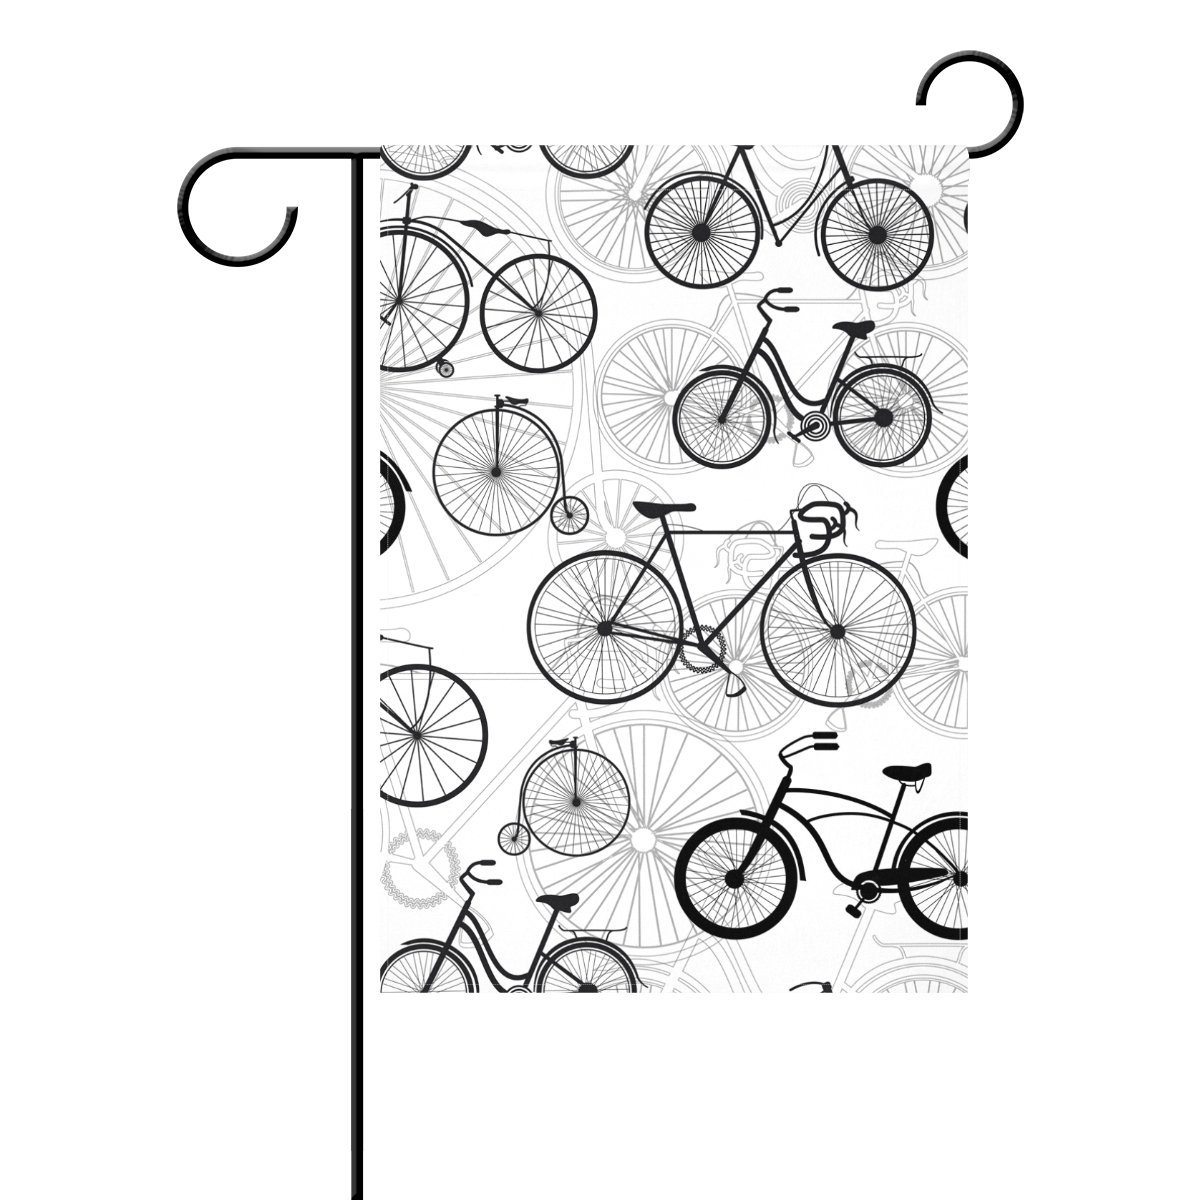 Cheap Custom Bicycle Flags, find Custom Bicycle Flags deals